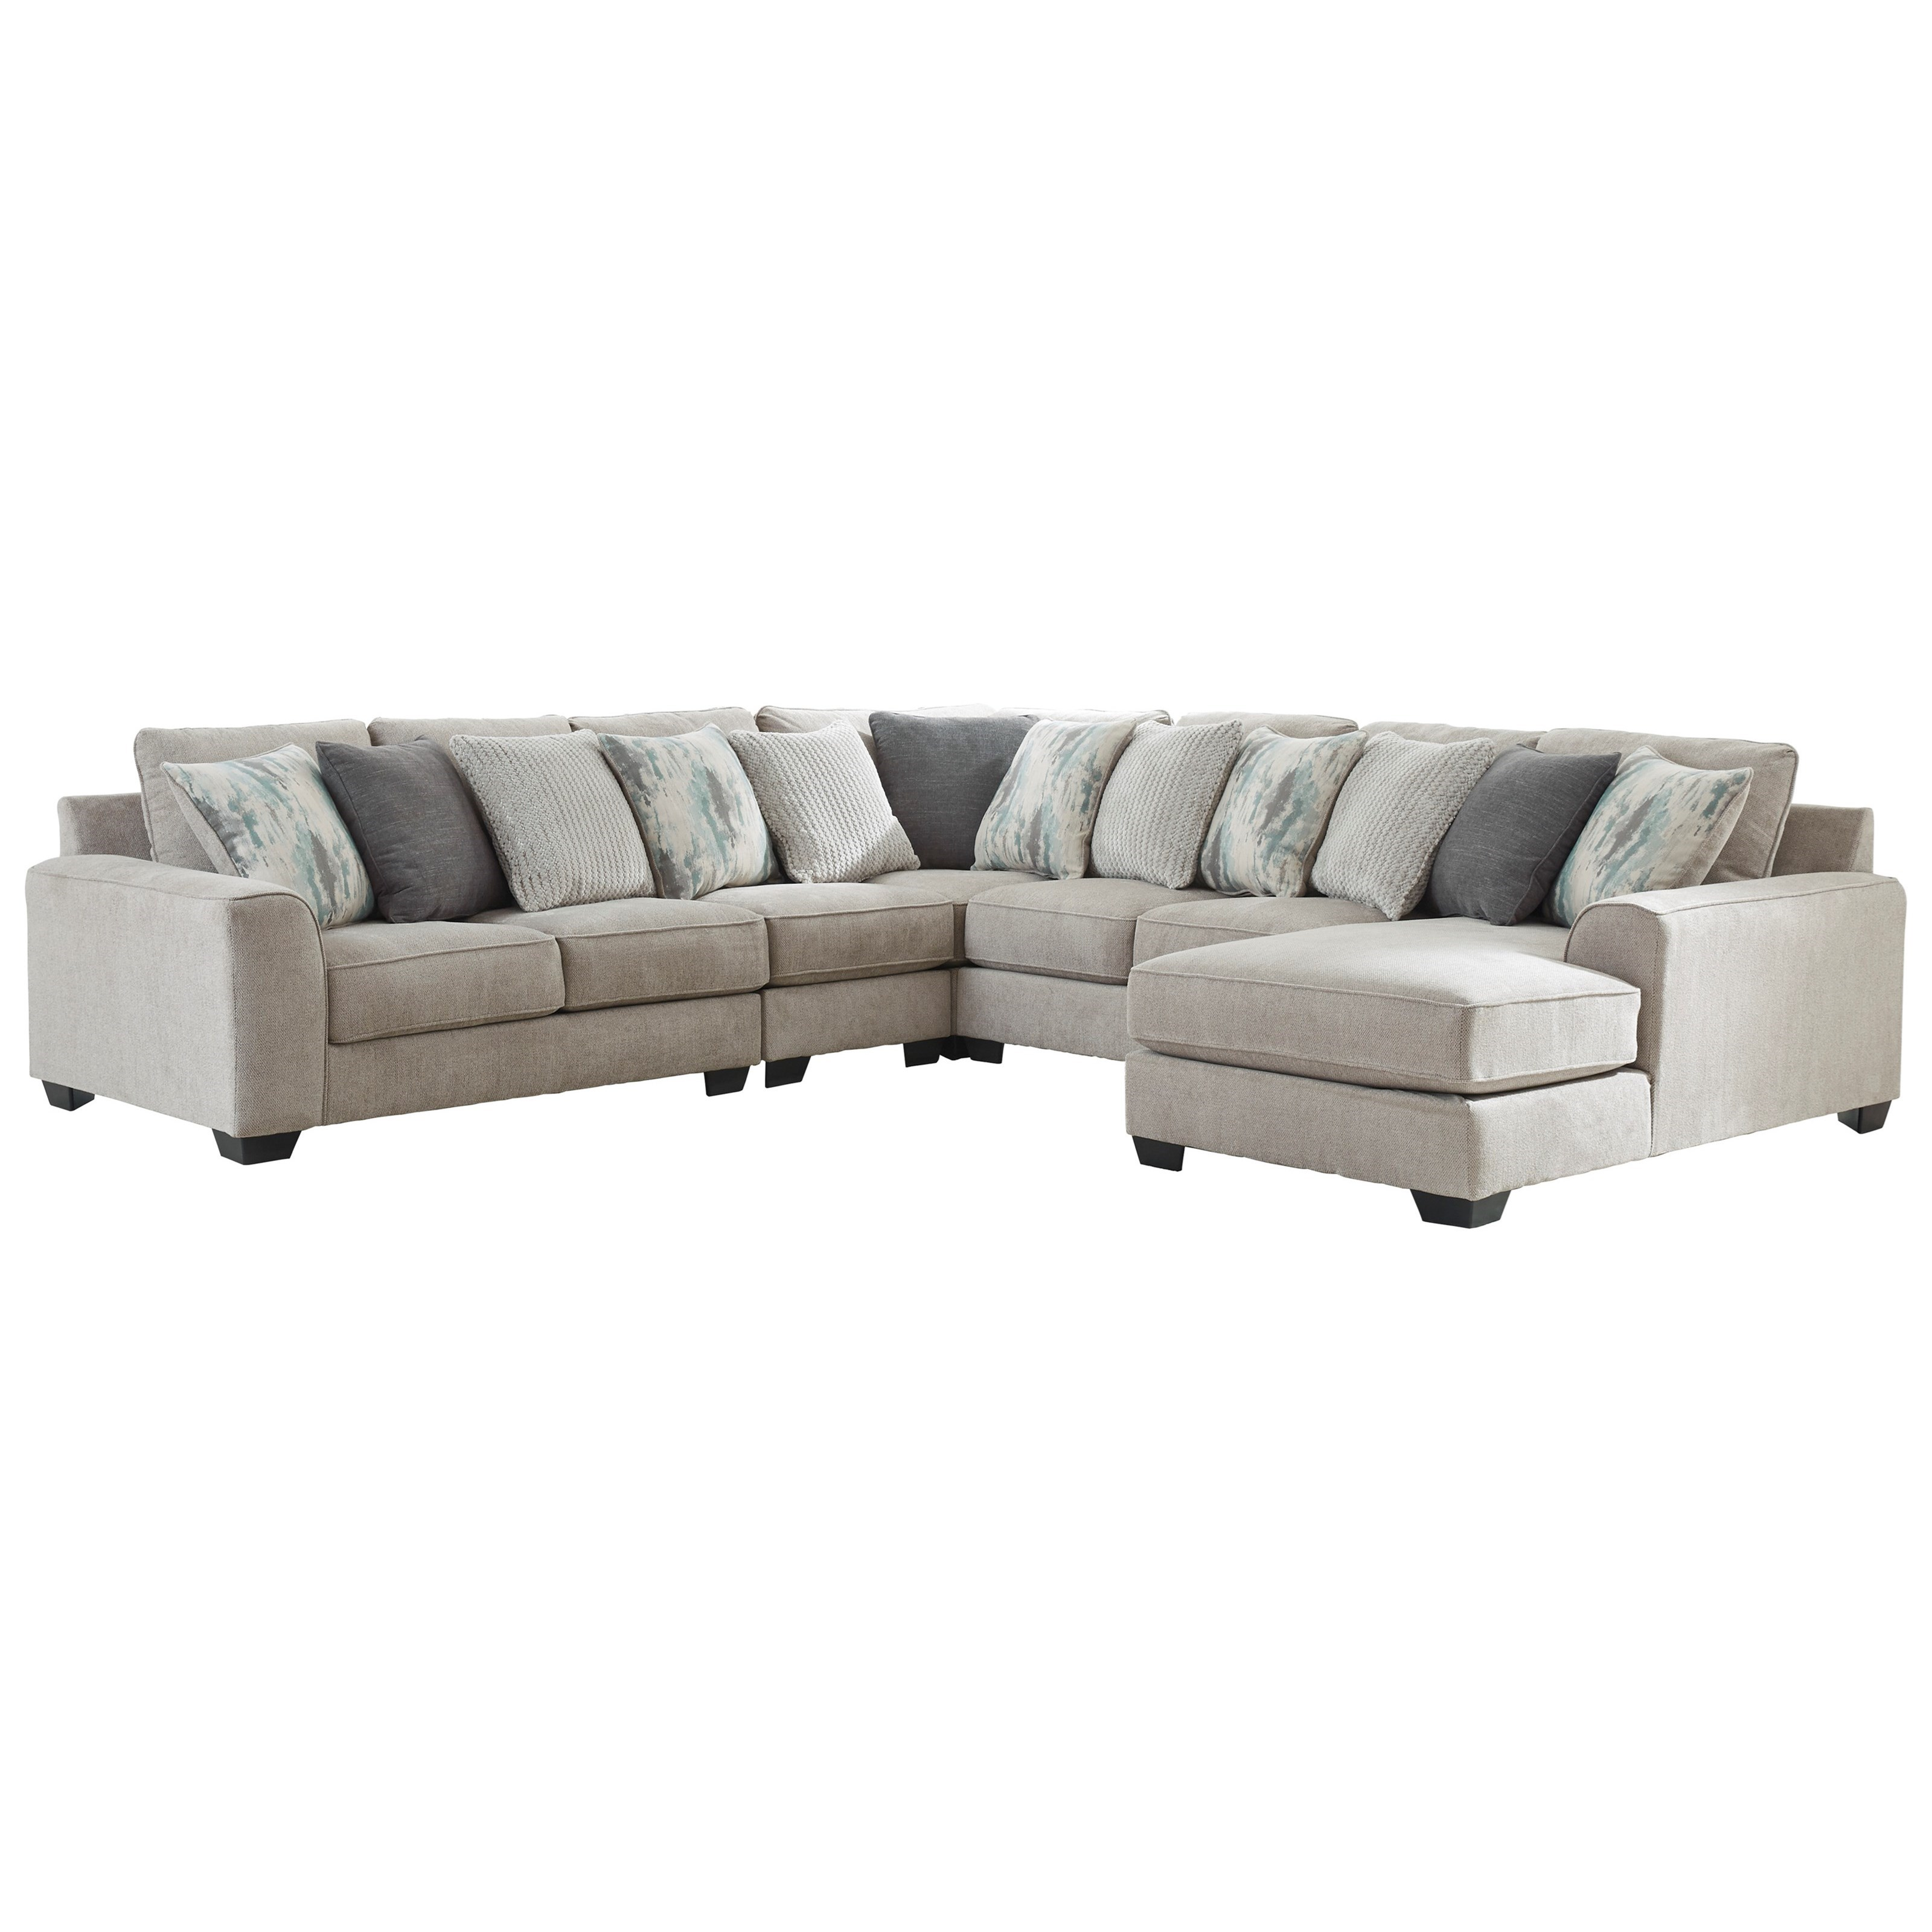 Ardsley 5-Piece Sectional with Right Chaise by Benchcraft at Home Furnishings Direct